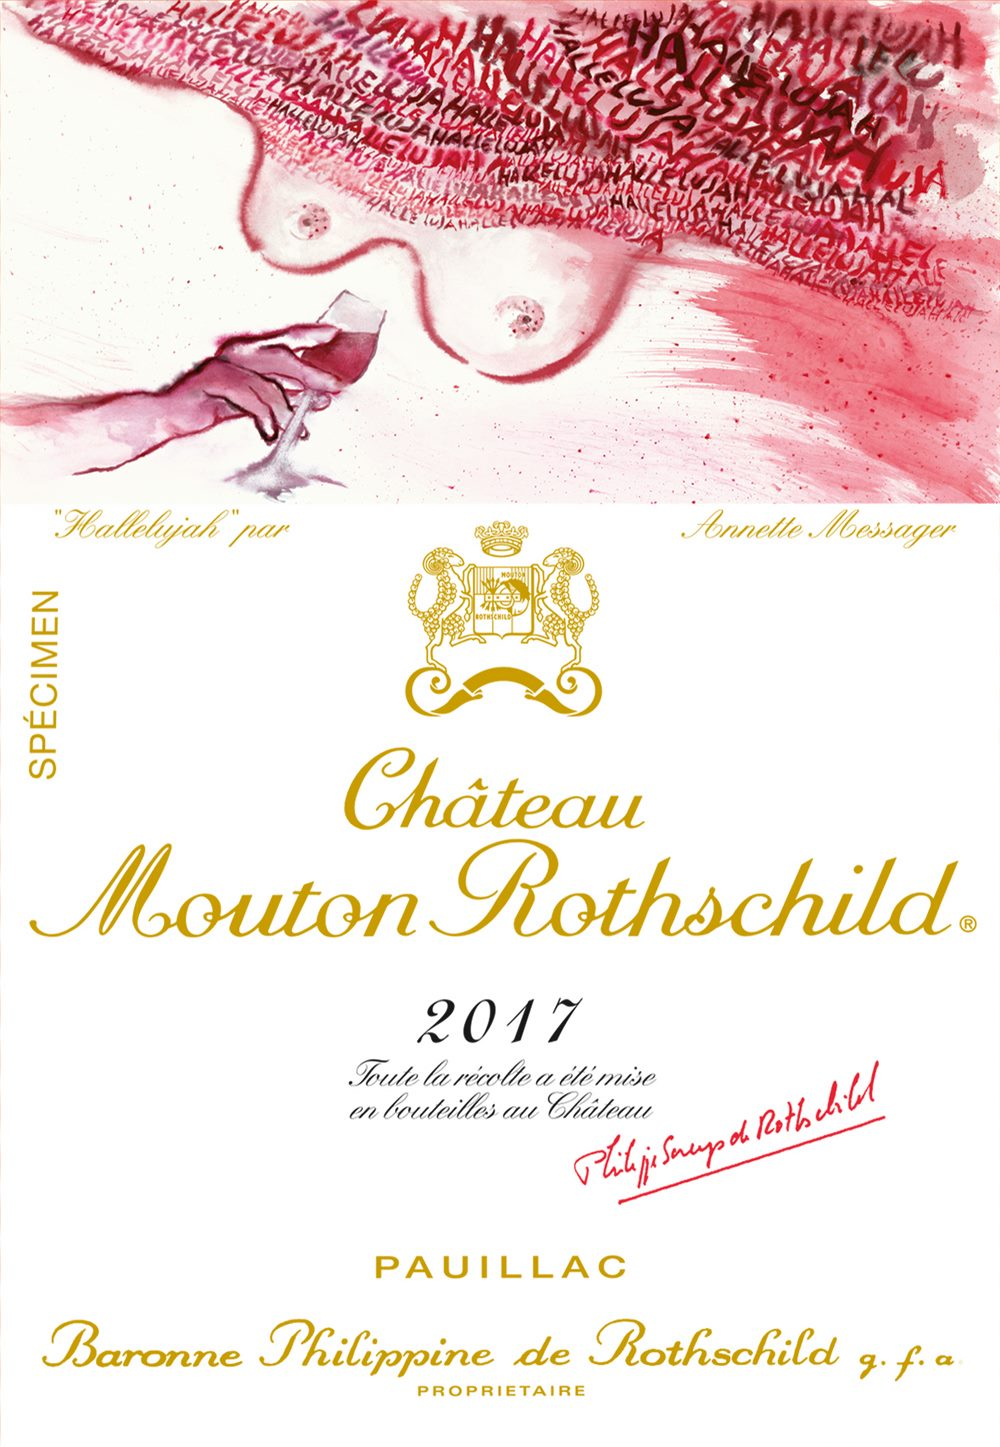 Annette Messagerillustrates the label of 2017 Château Mouton Rothschild